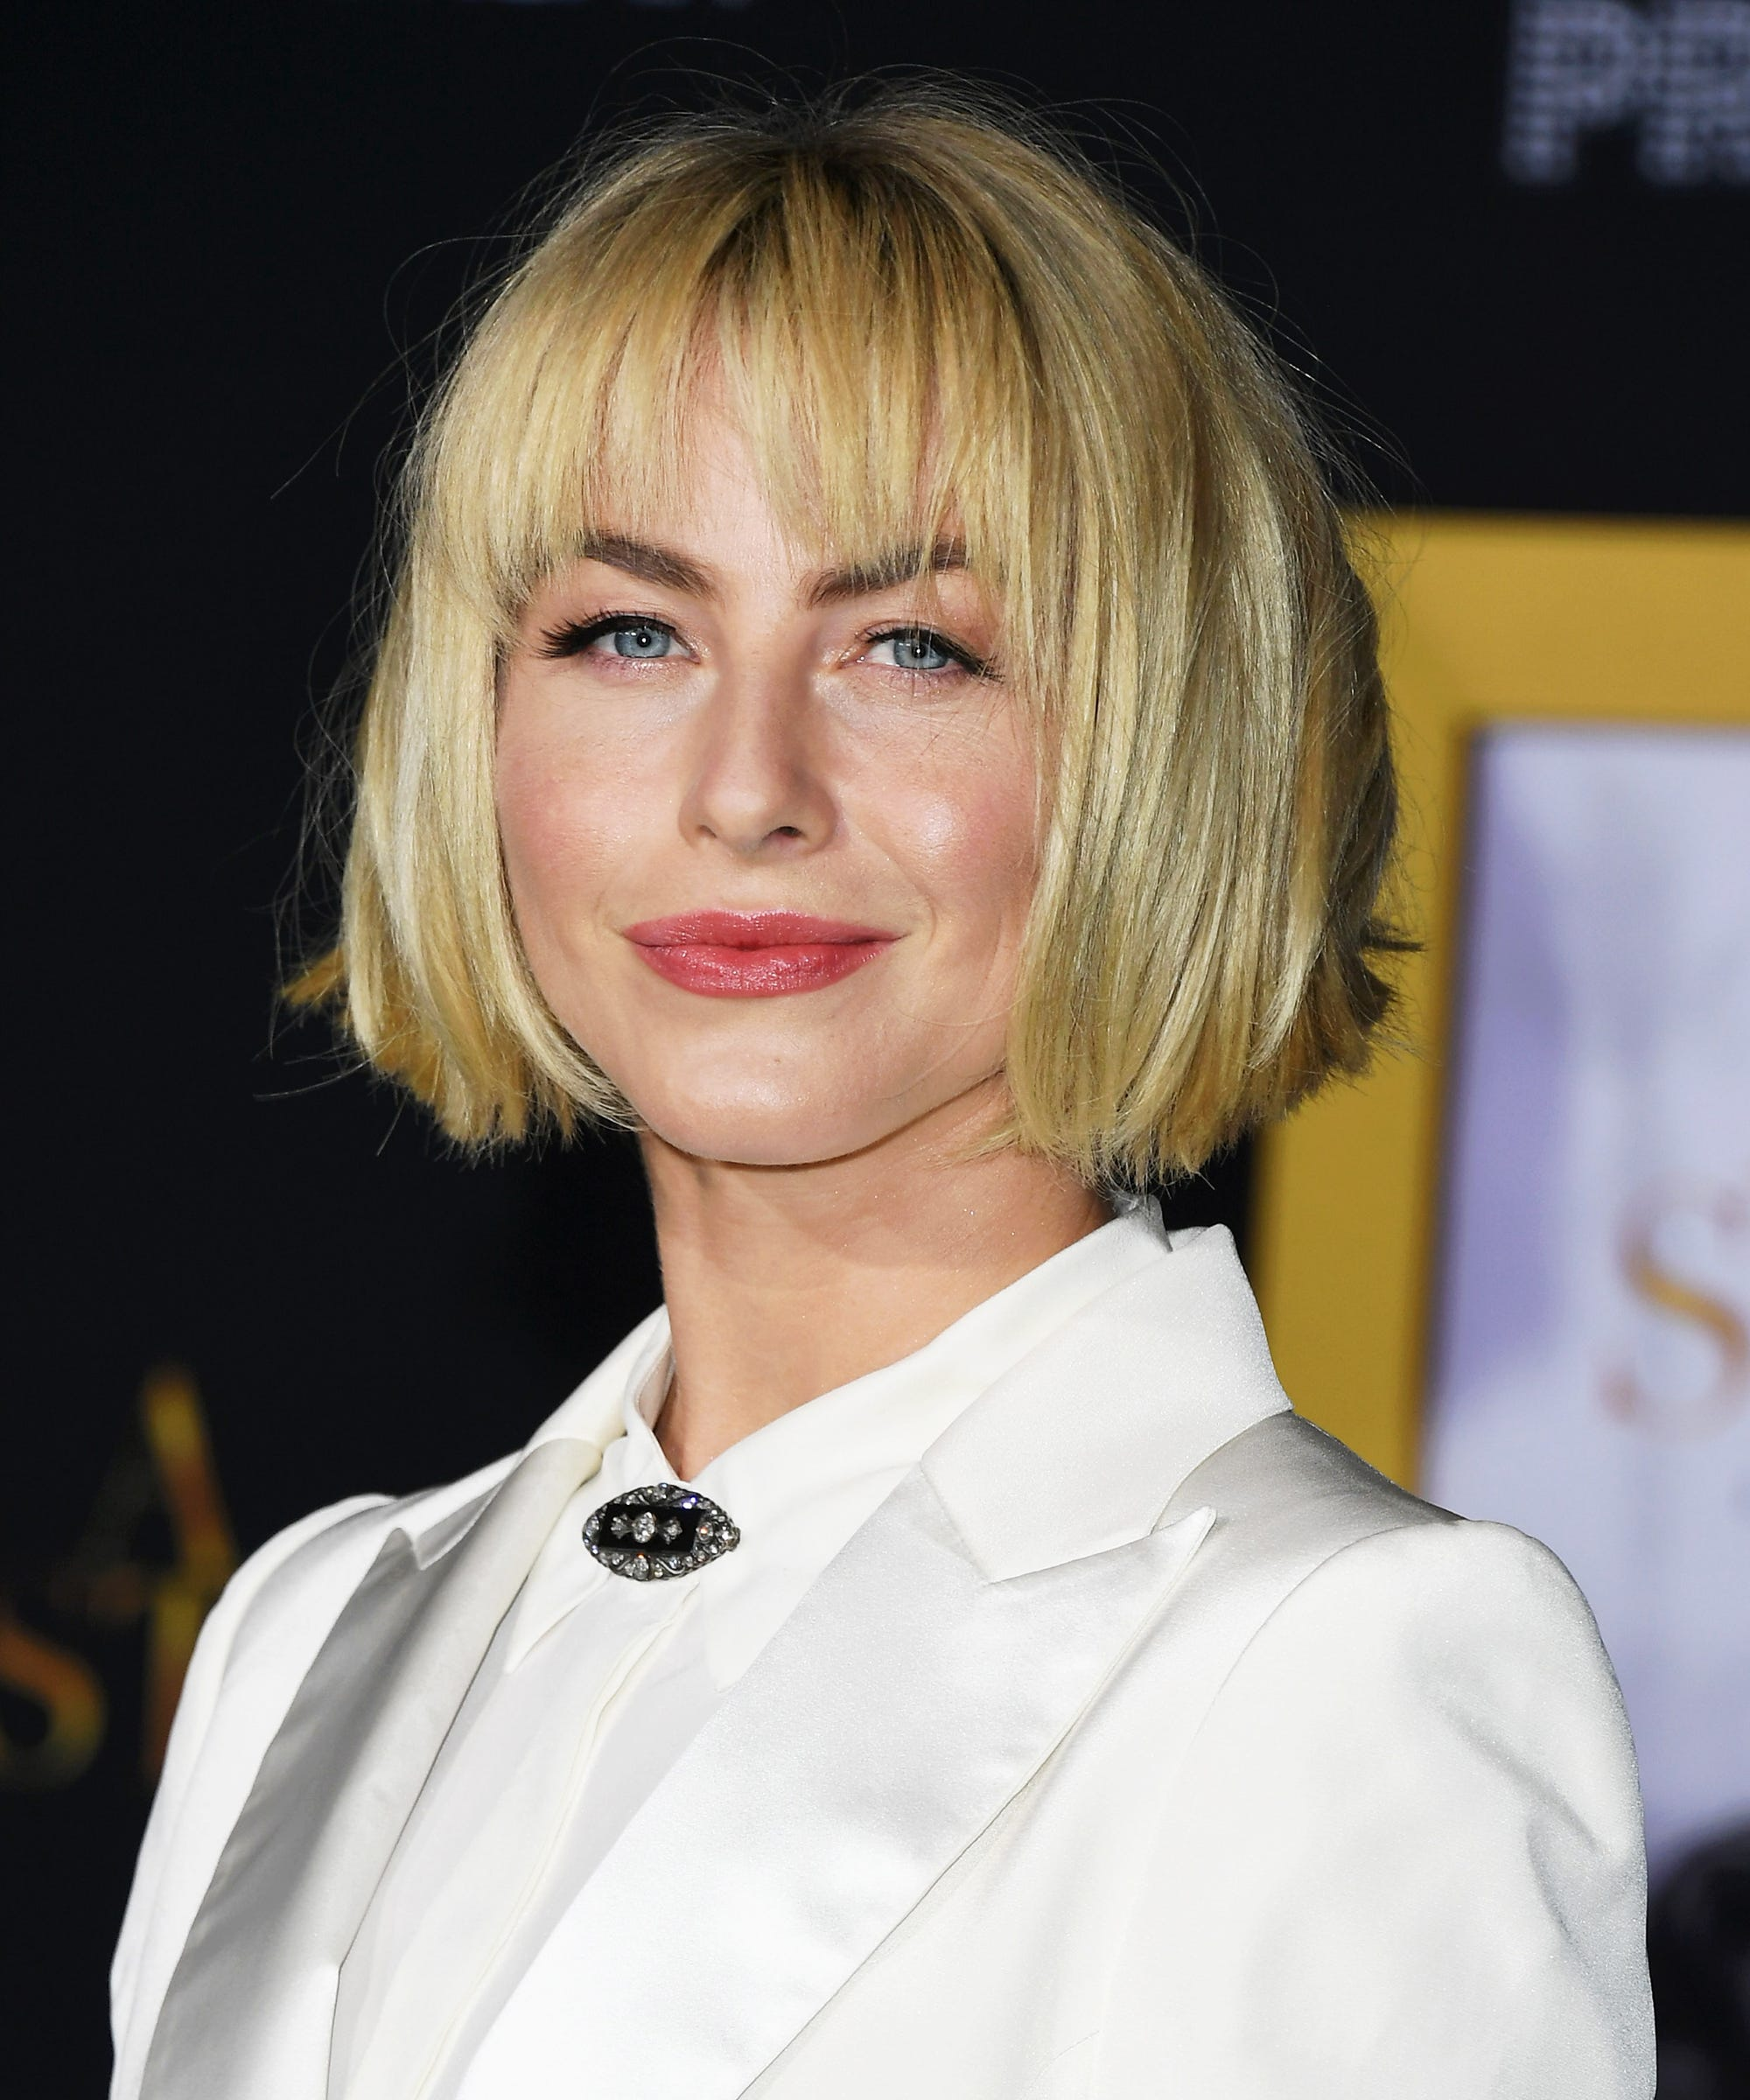 Julianne Hough Short Bob Haircut Is A Totally New Look